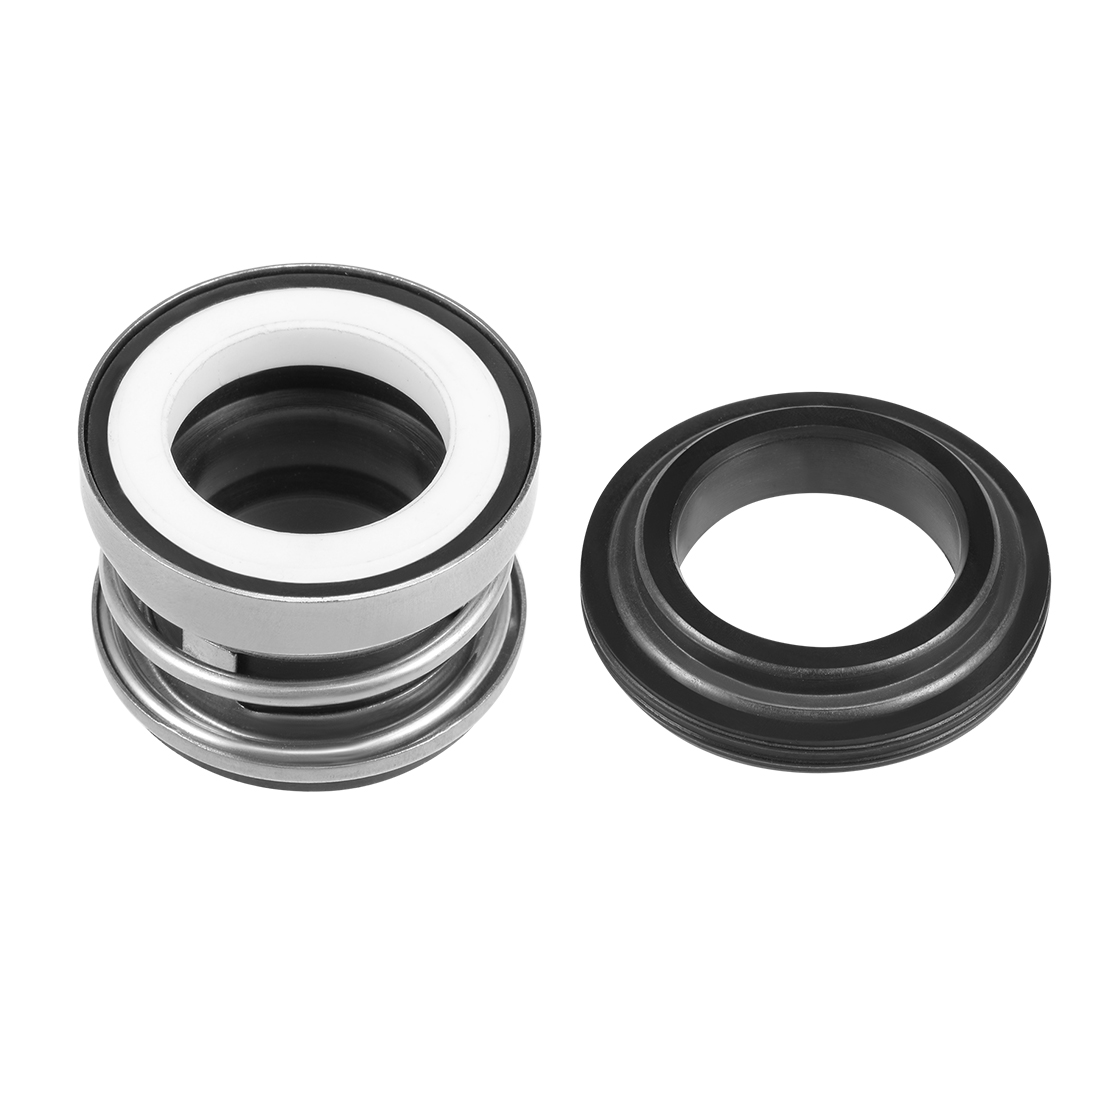 Mechanical Shaft Seal Replacement for Pool Spa Pump 104-18 - image 4 de 4